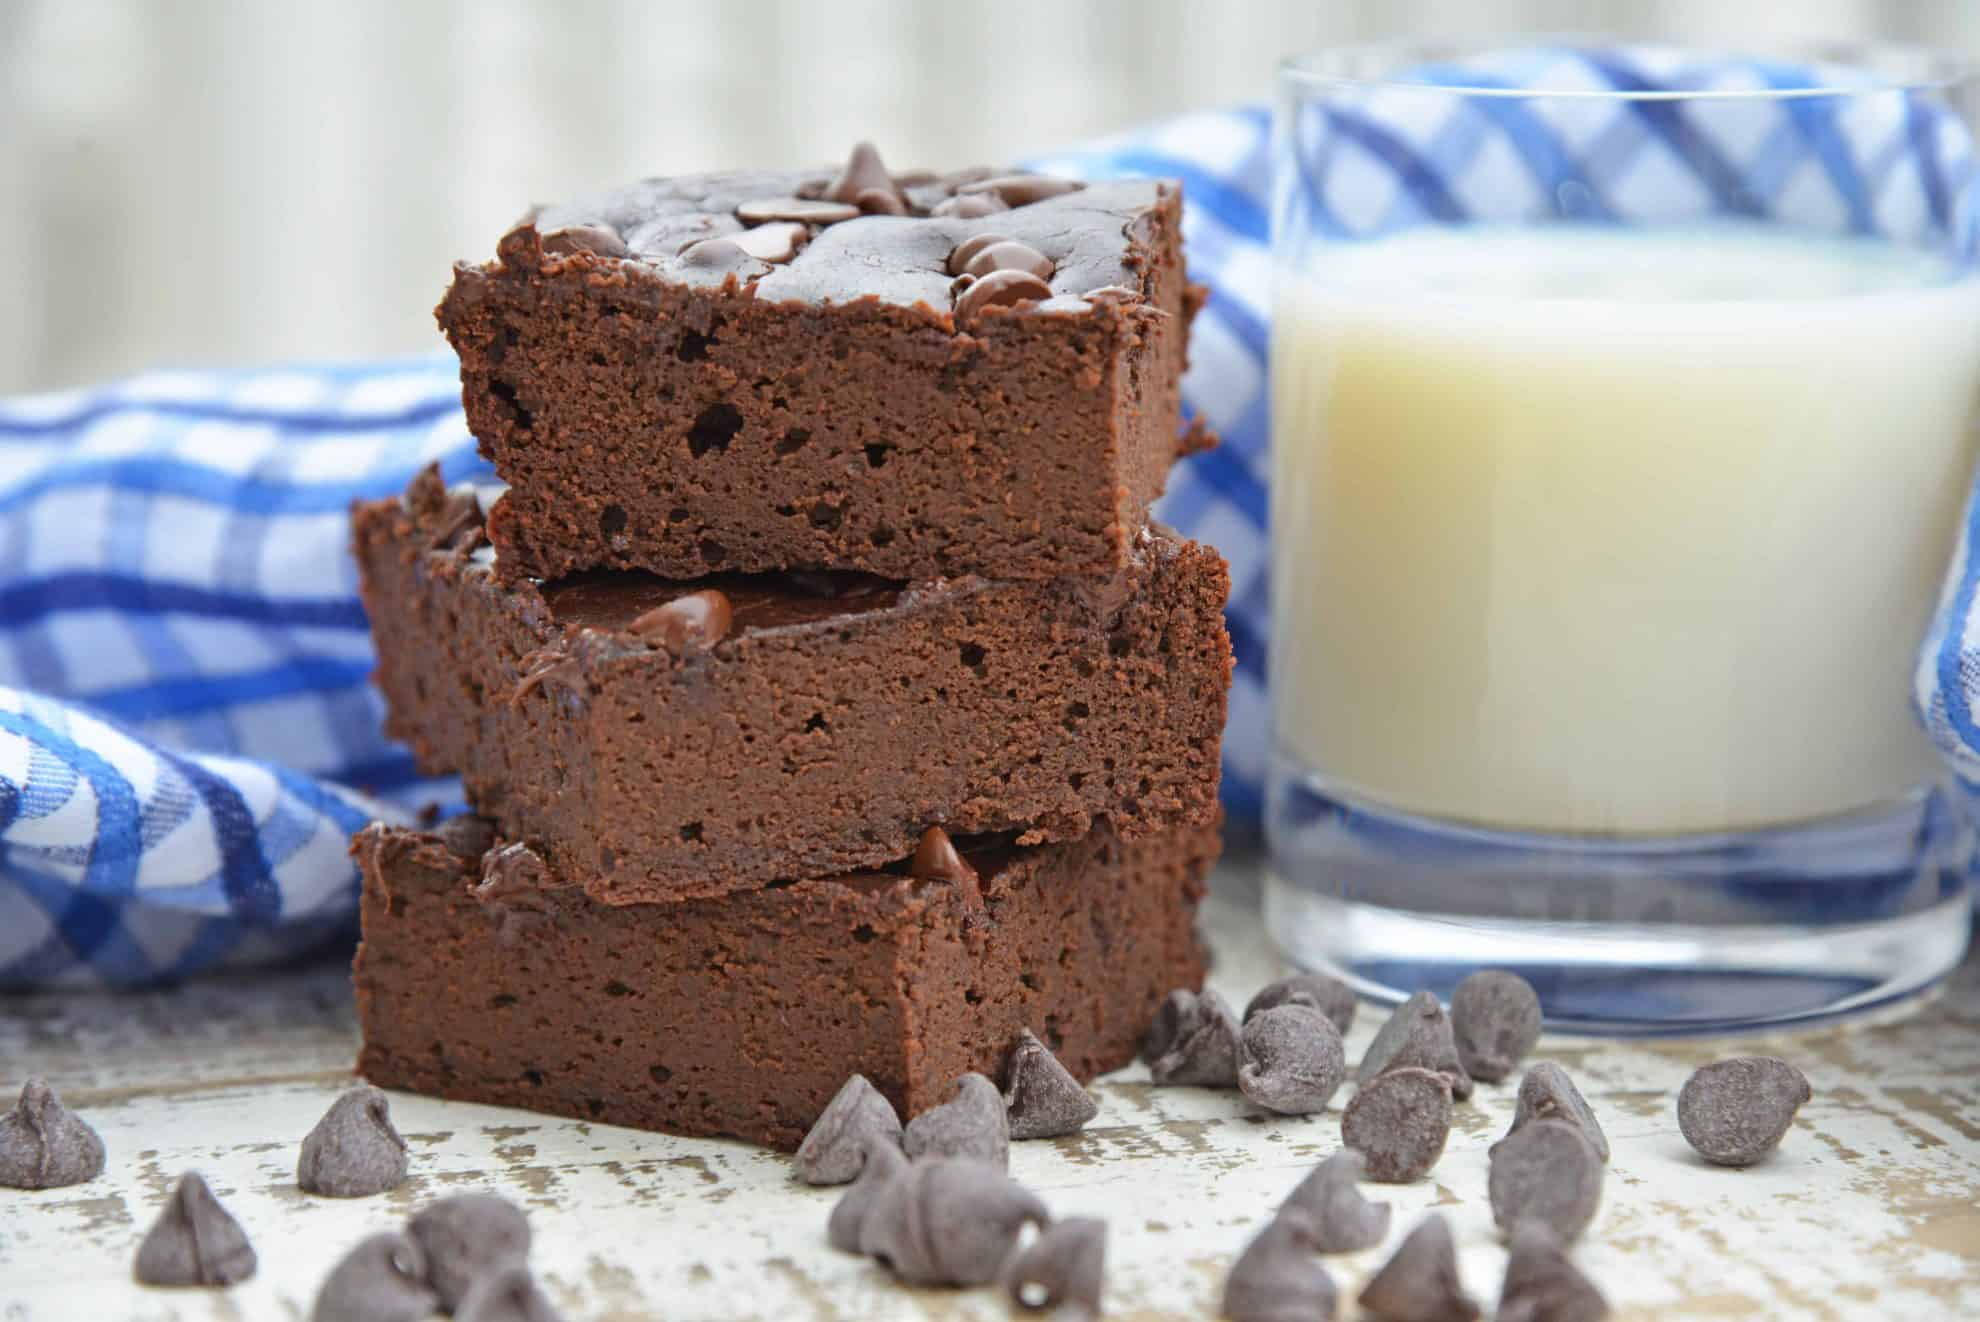 Flourless Black Bean Brownies are a delicious, fudgy gluten free brownie recipe. Healthy brownie recipes have never tasted this good! #glutenfreebrownies #homemadebrownies #flourlessbrownies #blackbeanbrownies www.savoryexperiments.com